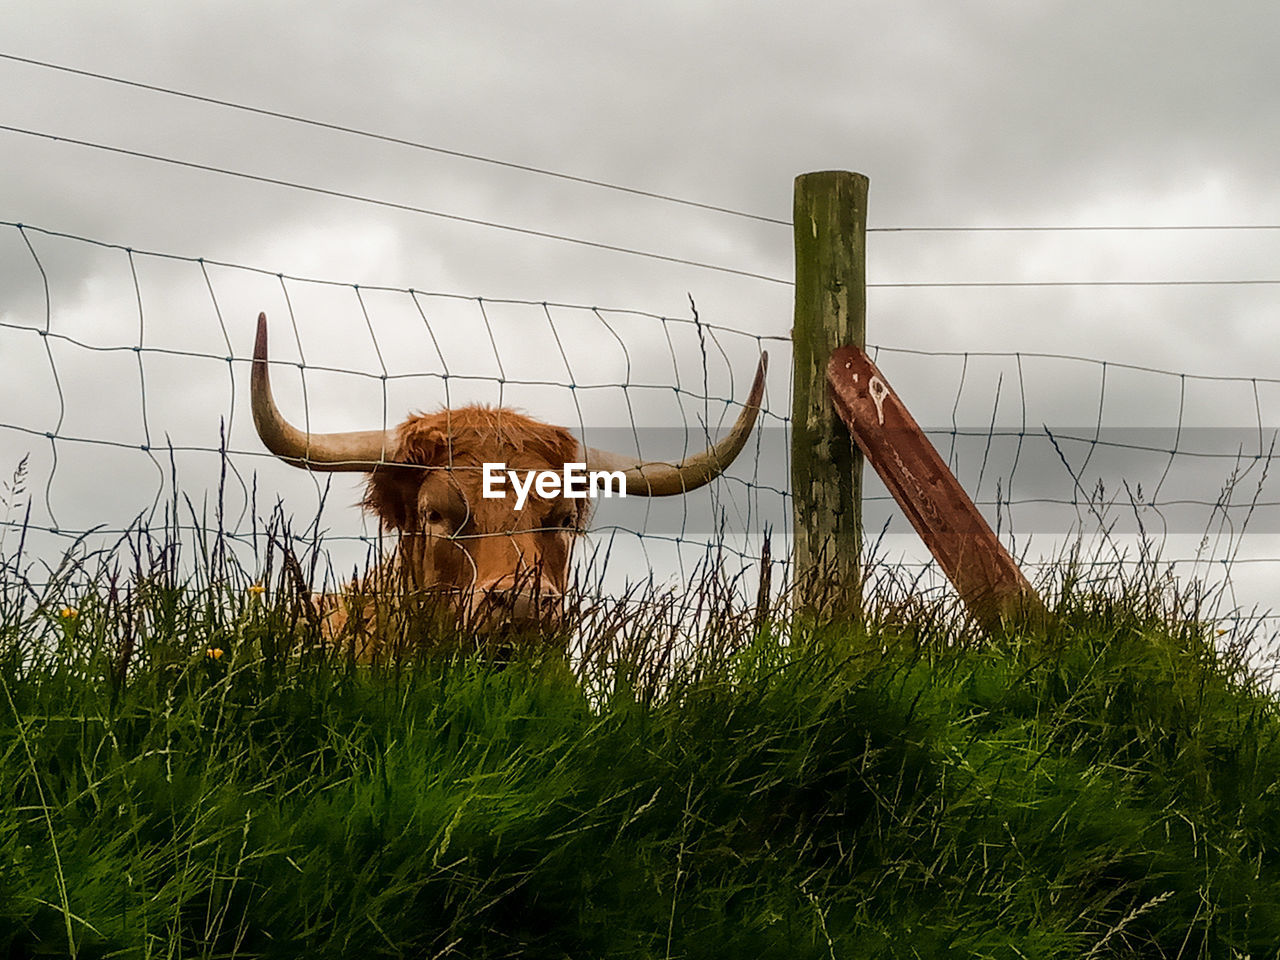 mammal, land, nature, field, domestic animals, animal themes, horned, sky, animal, livestock, grass, plant, pets, one animal, vertebrate, domestic, boundary, barrier, cattle, domestic cattle, no people, herbivorous, outdoors, animal head